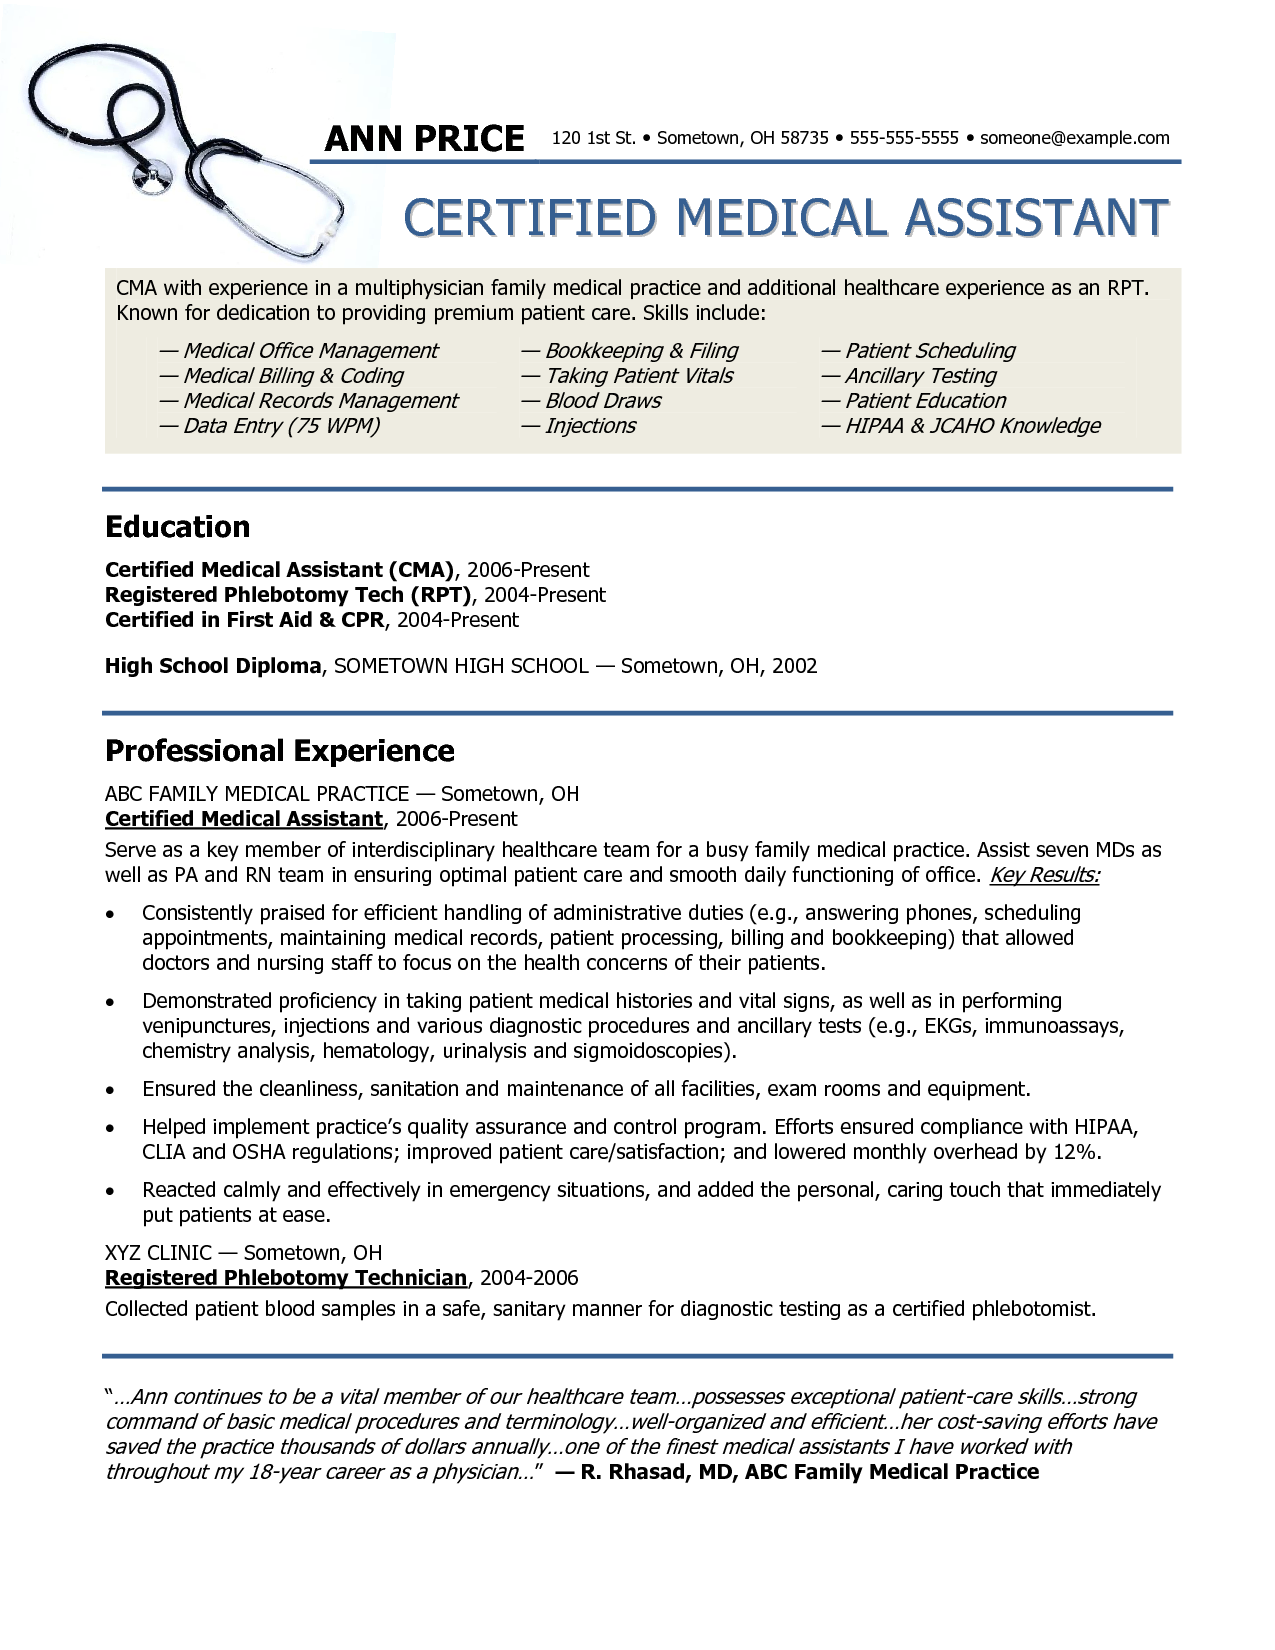 Resume For Medical Assistant Resume Examples Example Of Medical Assistant Resume Regular